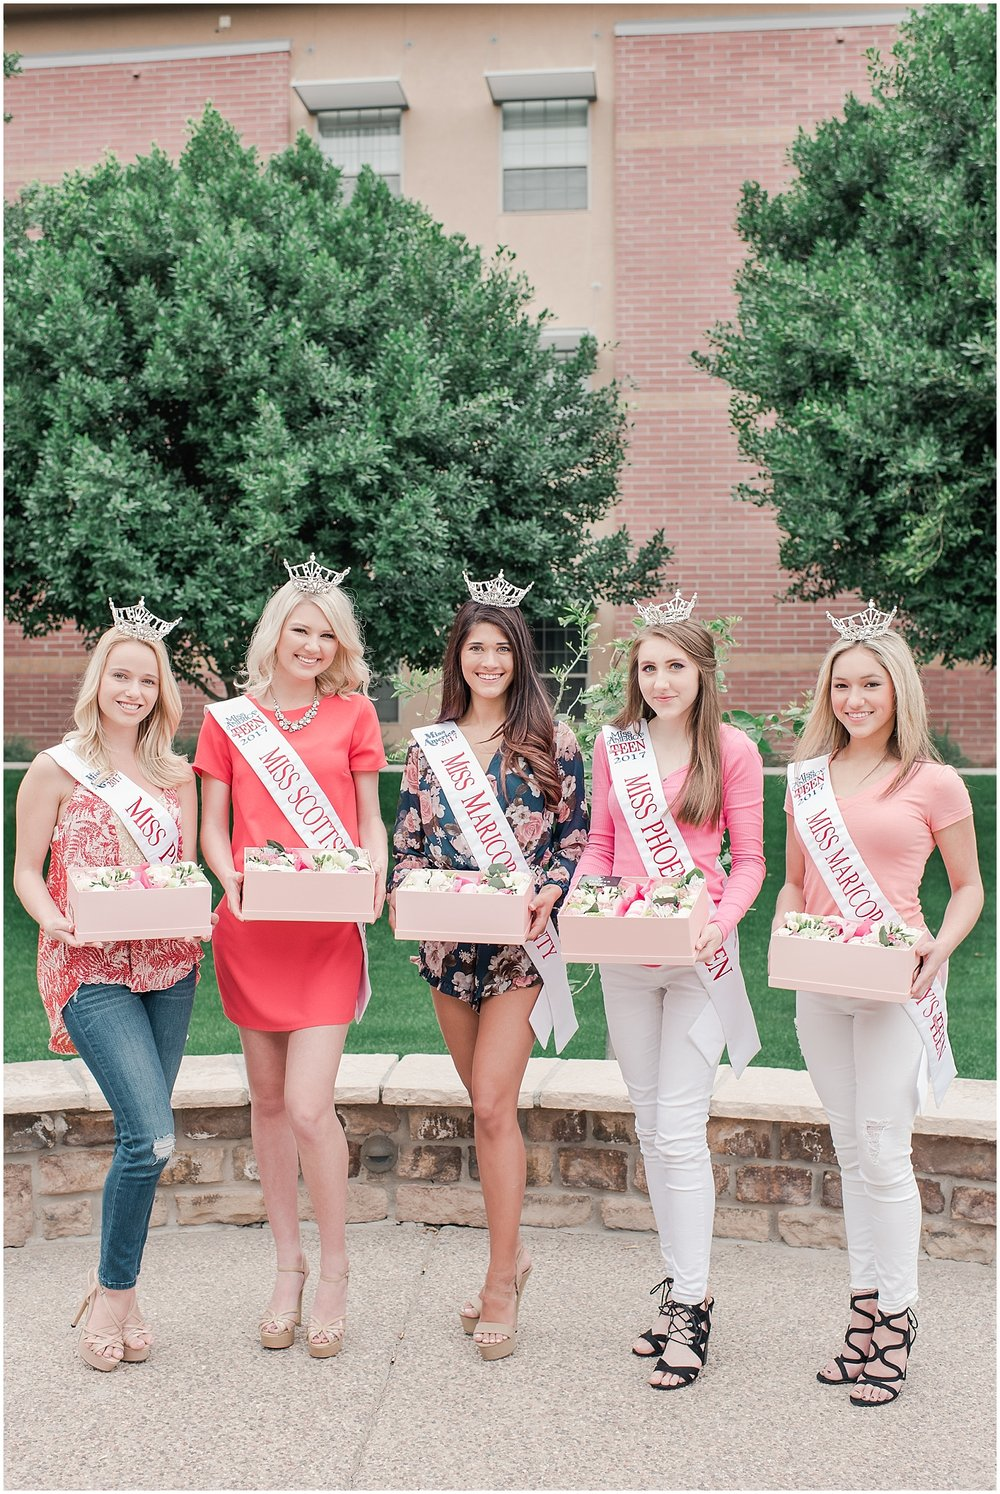 Beautiful boxes filled with an arrangement of lovely flowers and delicious French macarons made with love by Flower from Lower, and held by Miss Maricopa County 2017 Courtney Ortega, Miss Phoenix 2017 Alyssa Scofield, Miss Maricopa's Outstanding Teen Ela Wootton, Miss Scottsdale's Outstanding Teen Alyssa Hart, and Miss Phoenix's Outstanding Teen Cassidy Miller. Photo taken by Jade Min Photography.